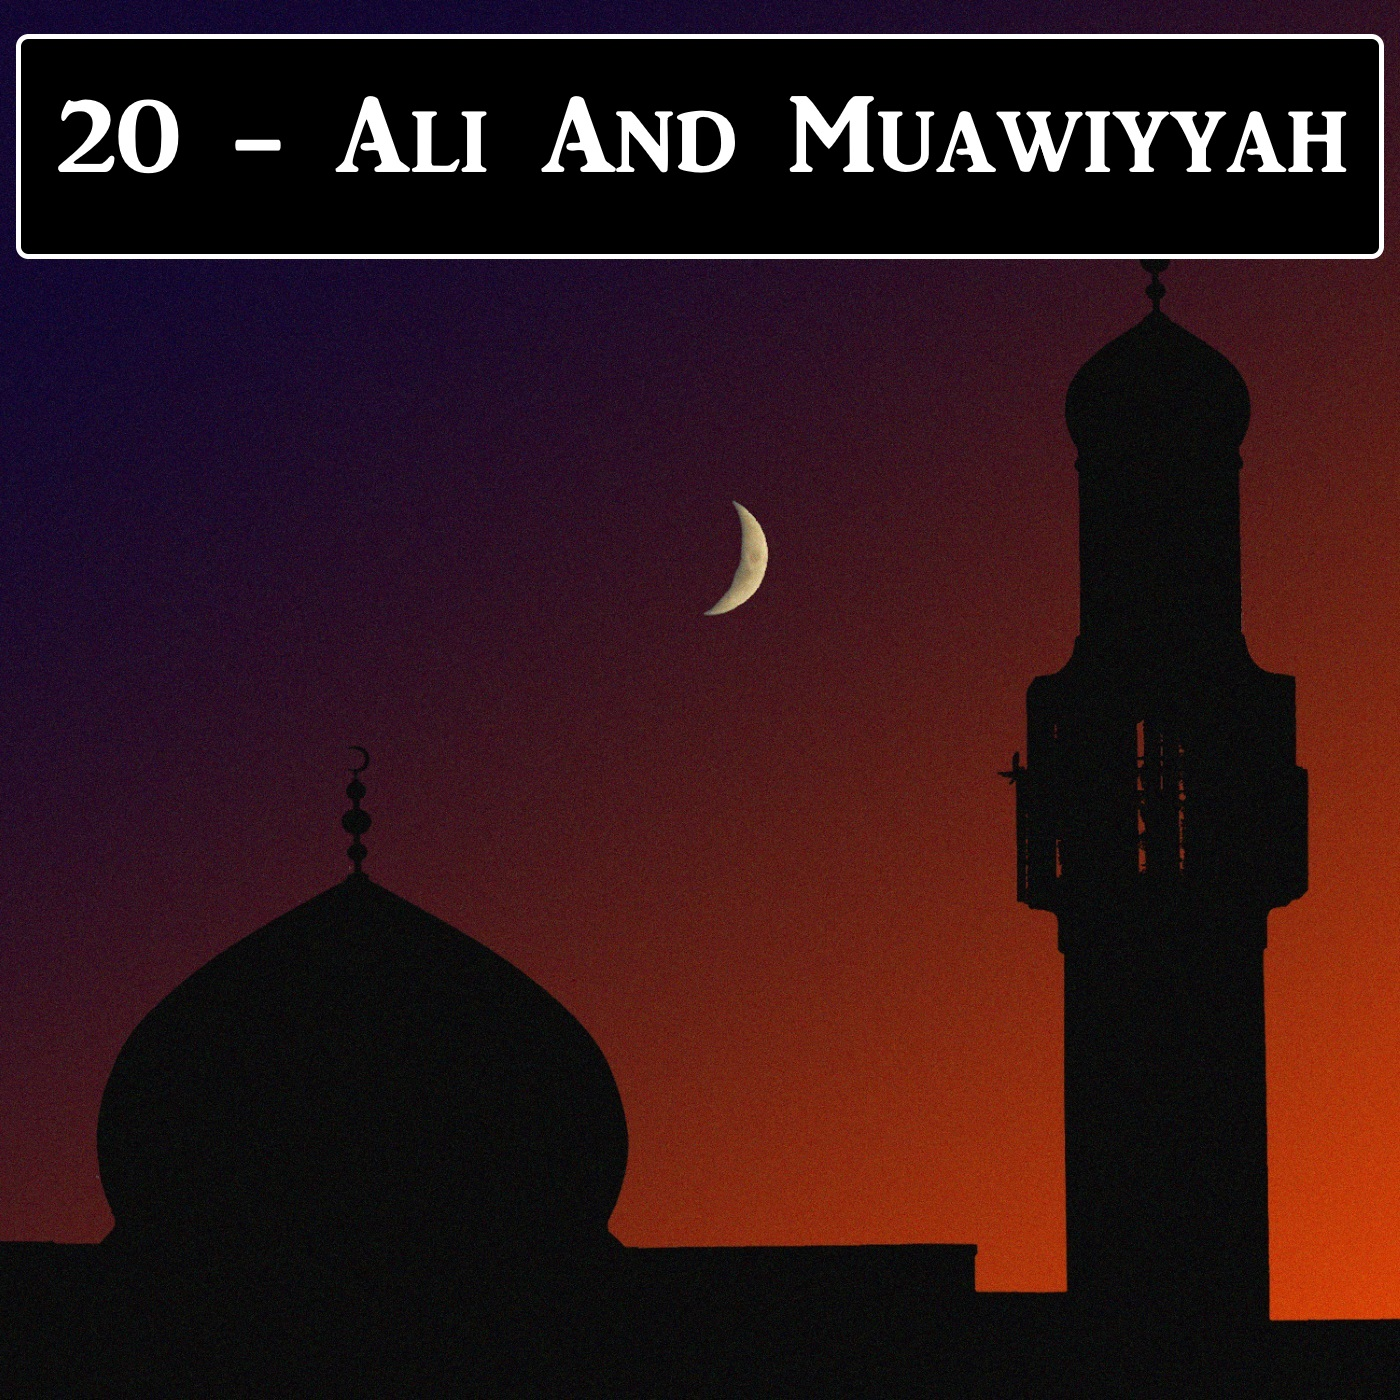 2-20: Ali And Muawiyyah